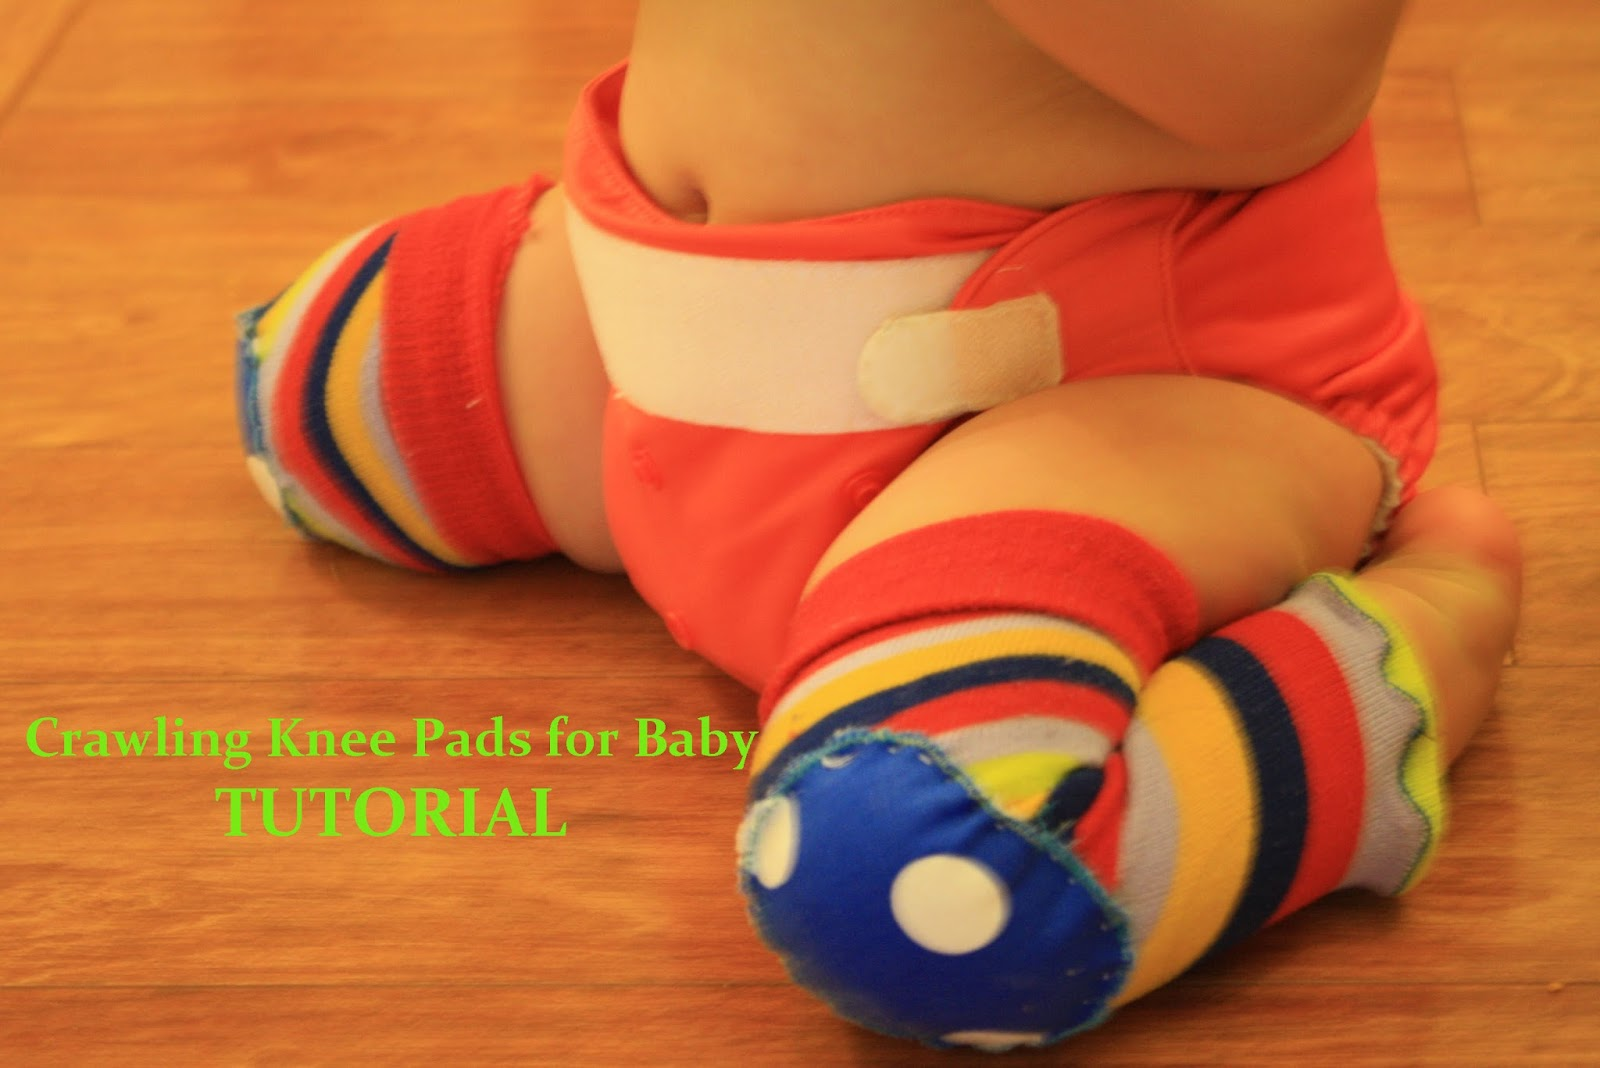 Olives And Pickles Crawling Knee Pads For Baby Tutorial